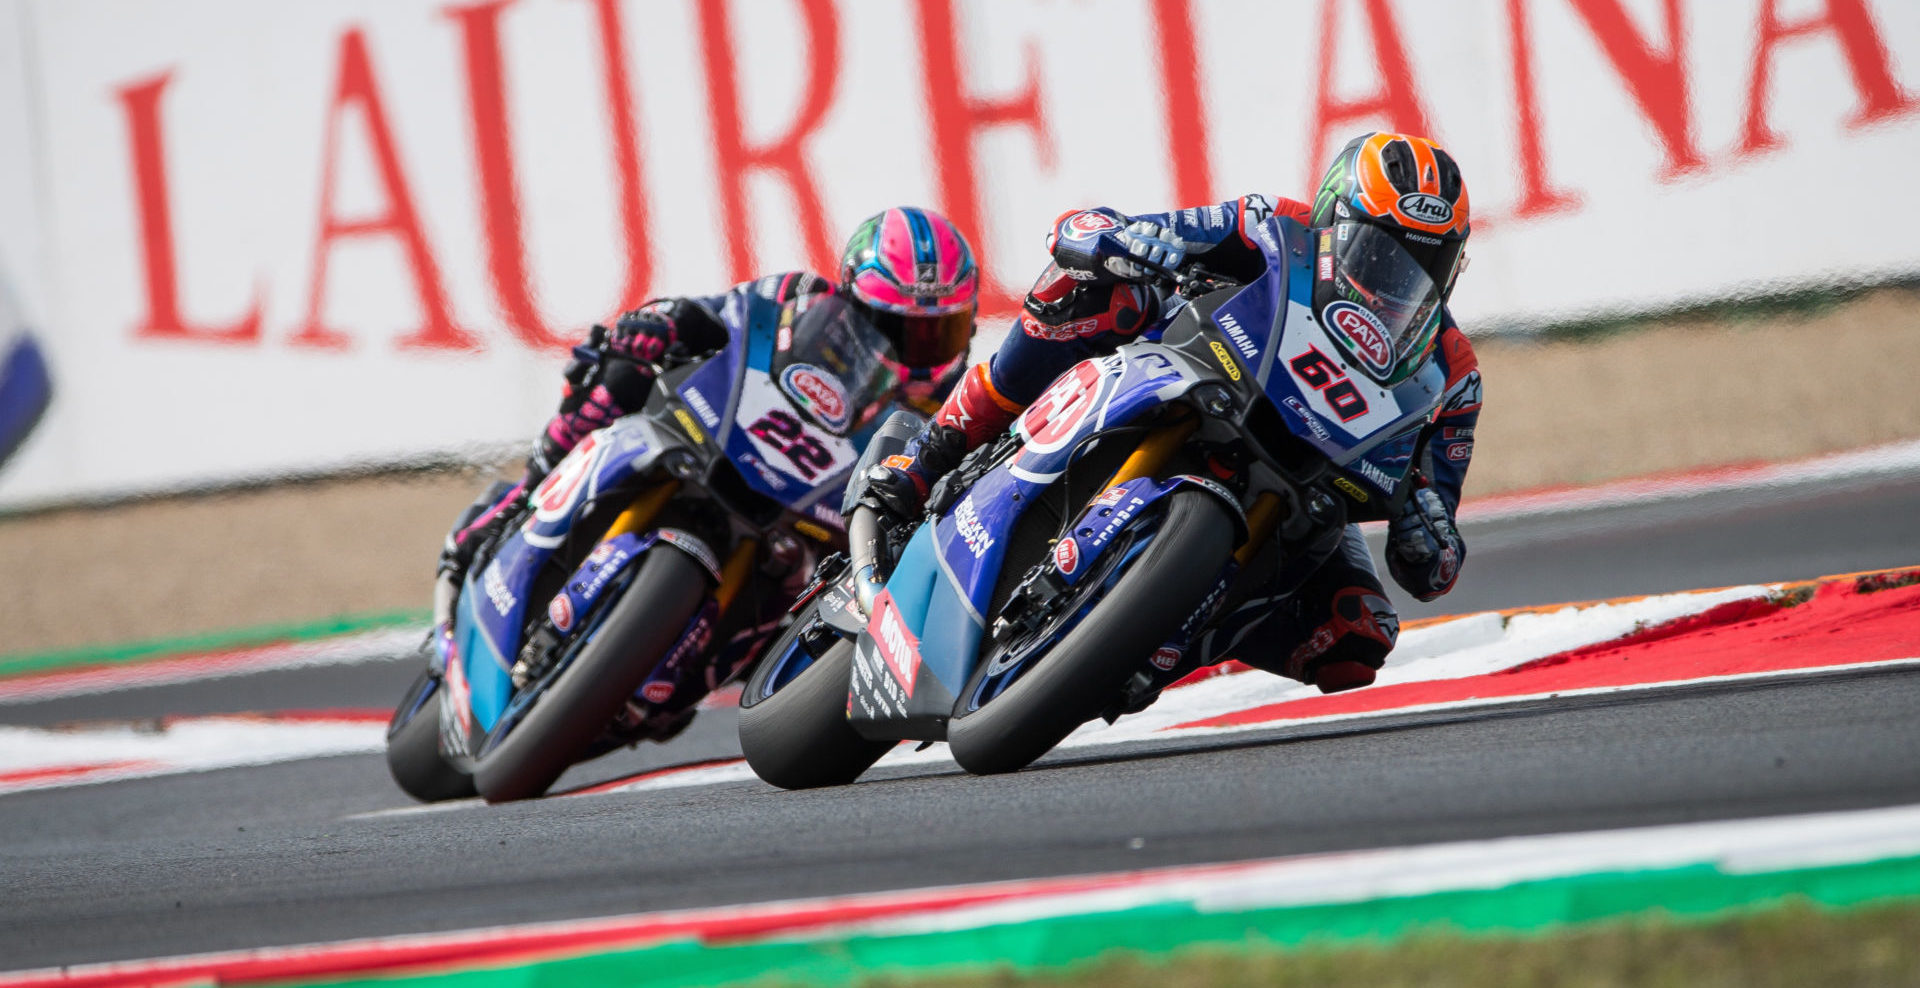 Pata Yamaha's Michael van der Mark (60) and Alex Lowes (22) in action.